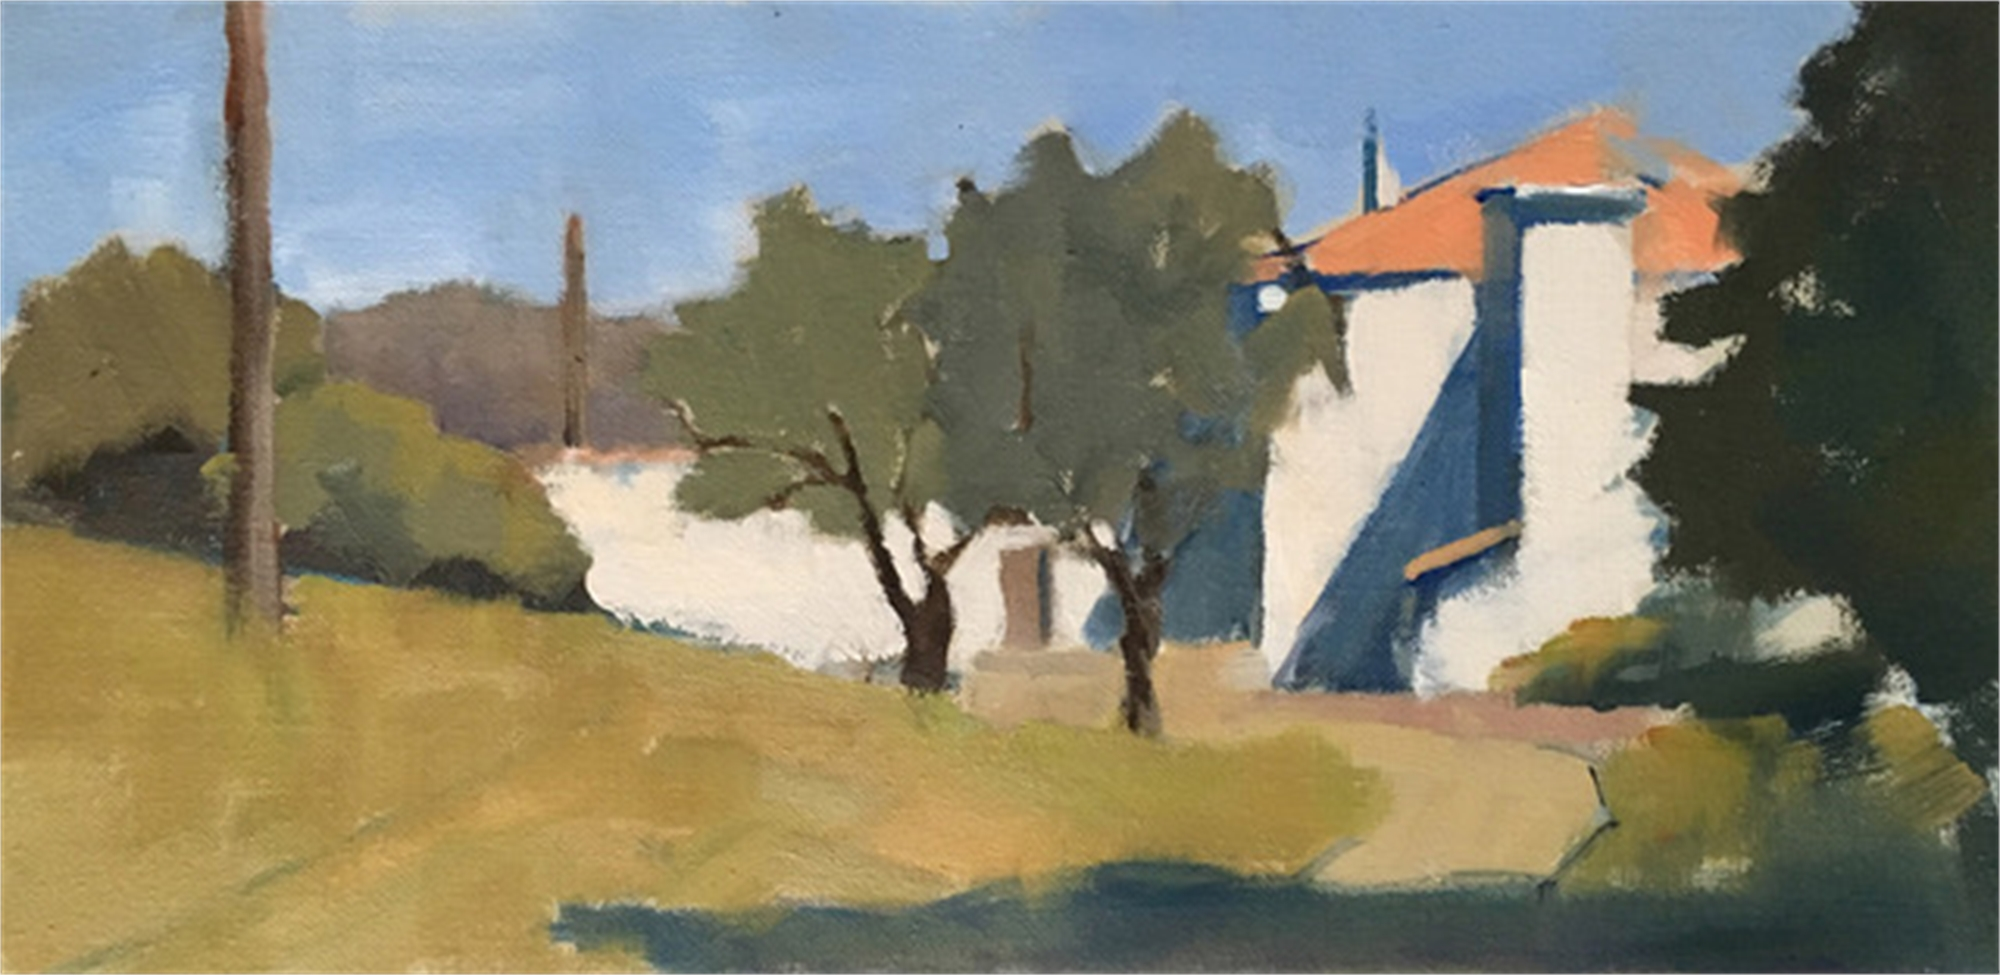 Villa View by Lesley Powell